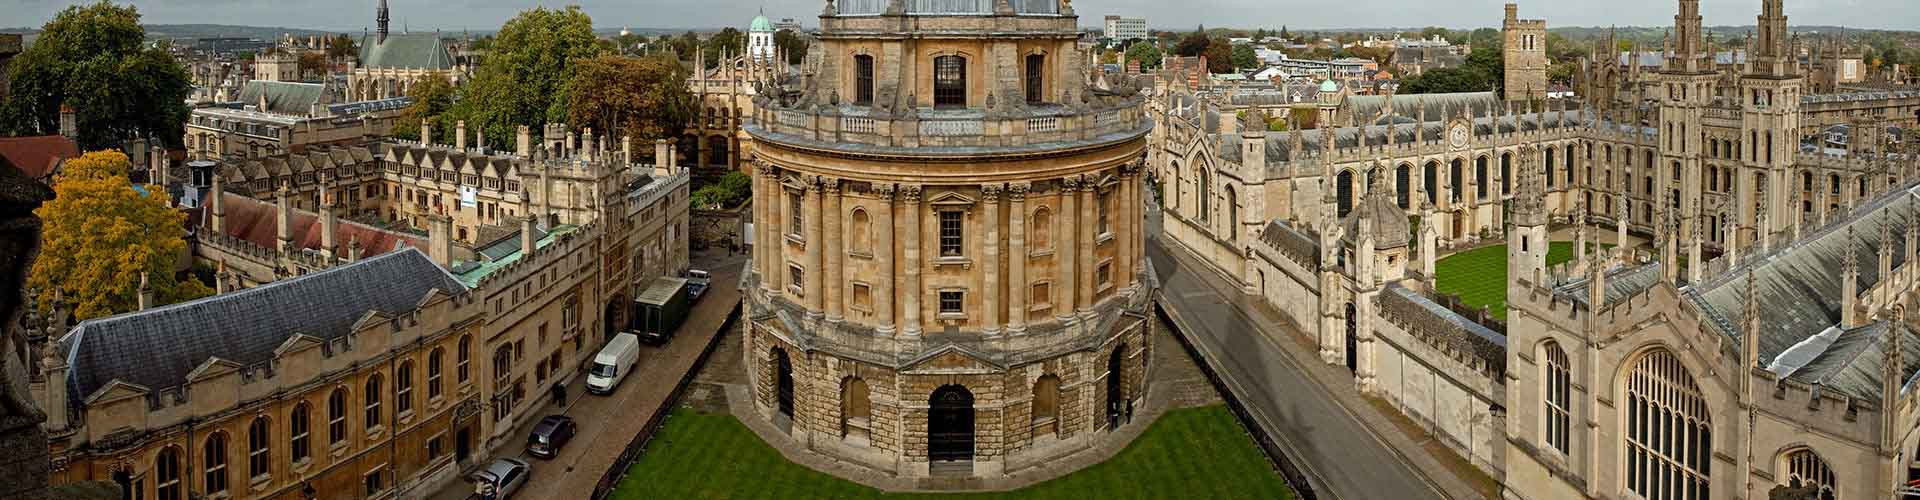 Oxford – Hostels in Oxford. Maps of Oxford, Photos and Reviews for each hostel in Oxford.